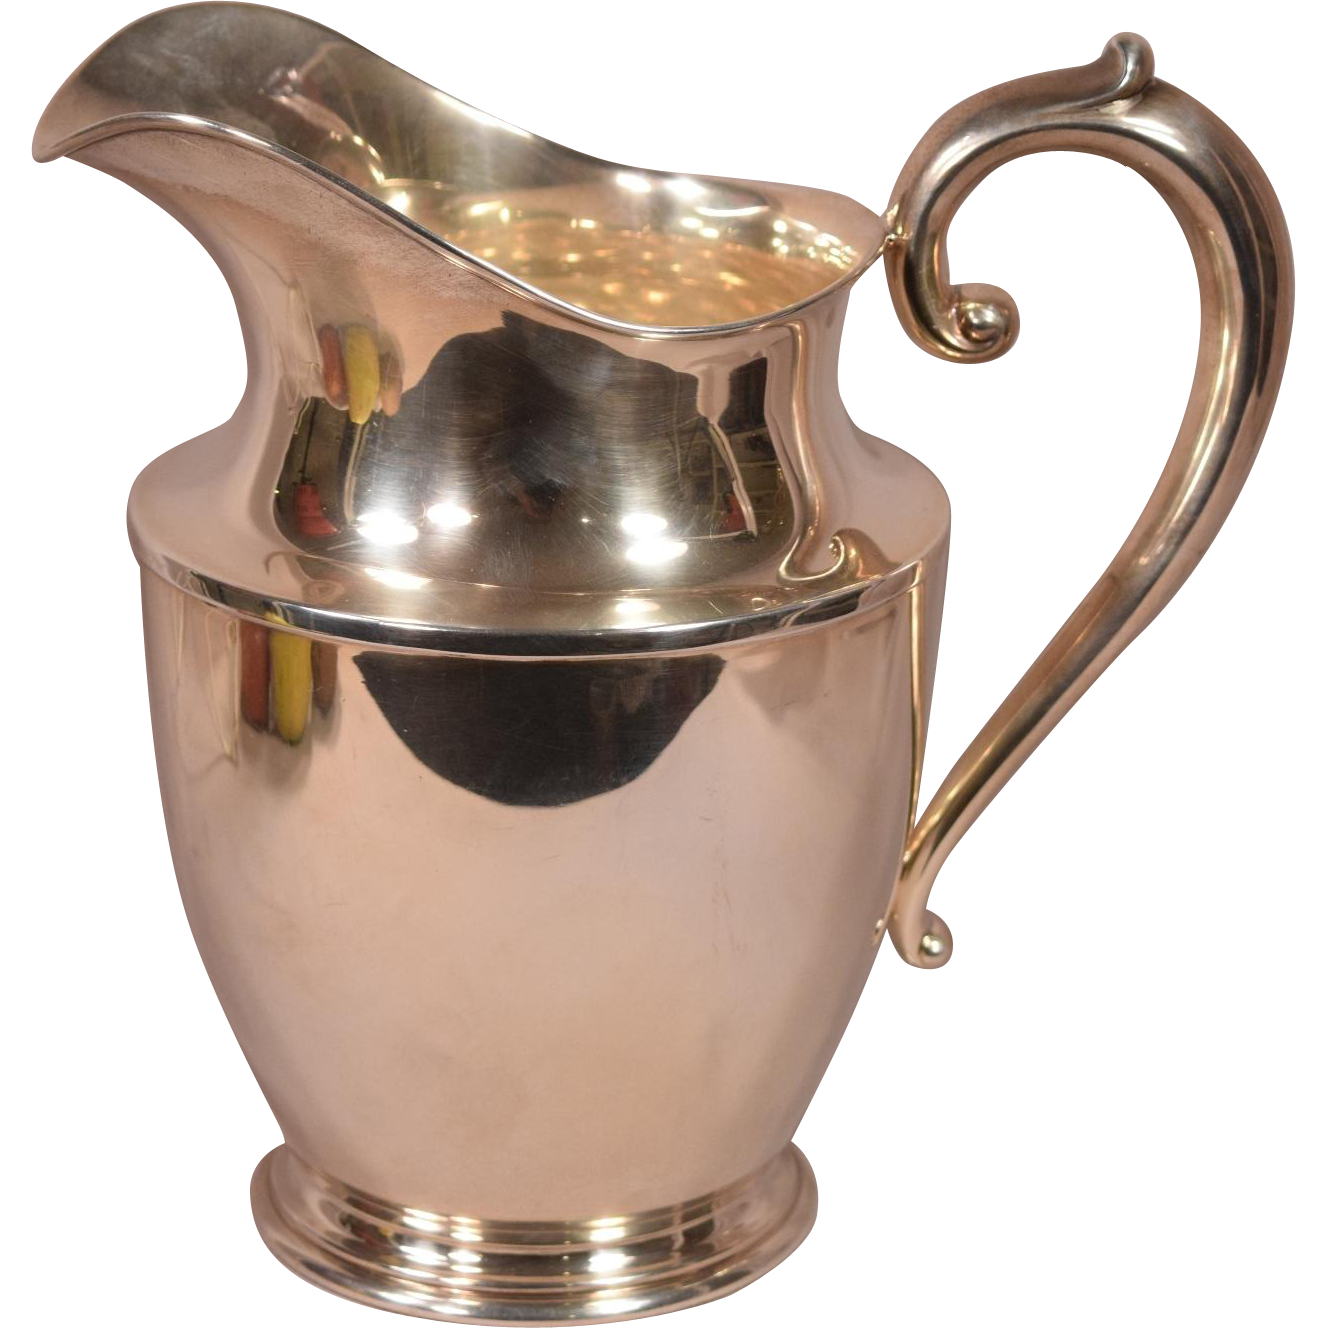 wallace sterling silver pitcher 201 4 1 2 pints troy ounces from beverlyhillsantiques on. Black Bedroom Furniture Sets. Home Design Ideas